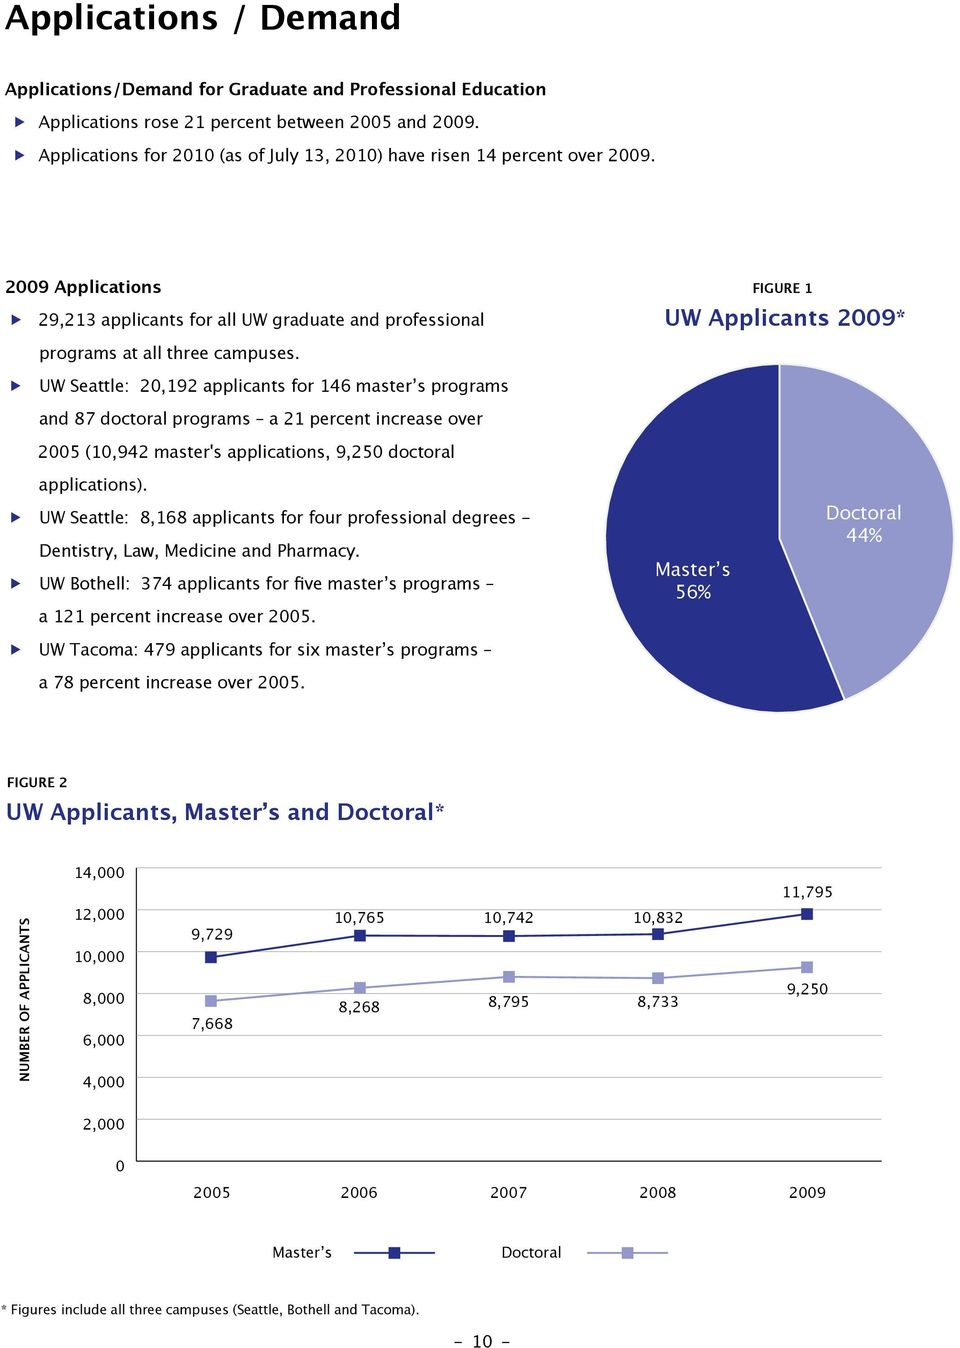 FIGURE 1 UW Applicants 2009* UW Seattle: 20,192 applicants for 146 master s programs and 87 doctoral programs a 21 percent increase over 2005 (10,942 master's applications, 9,250 doctoral